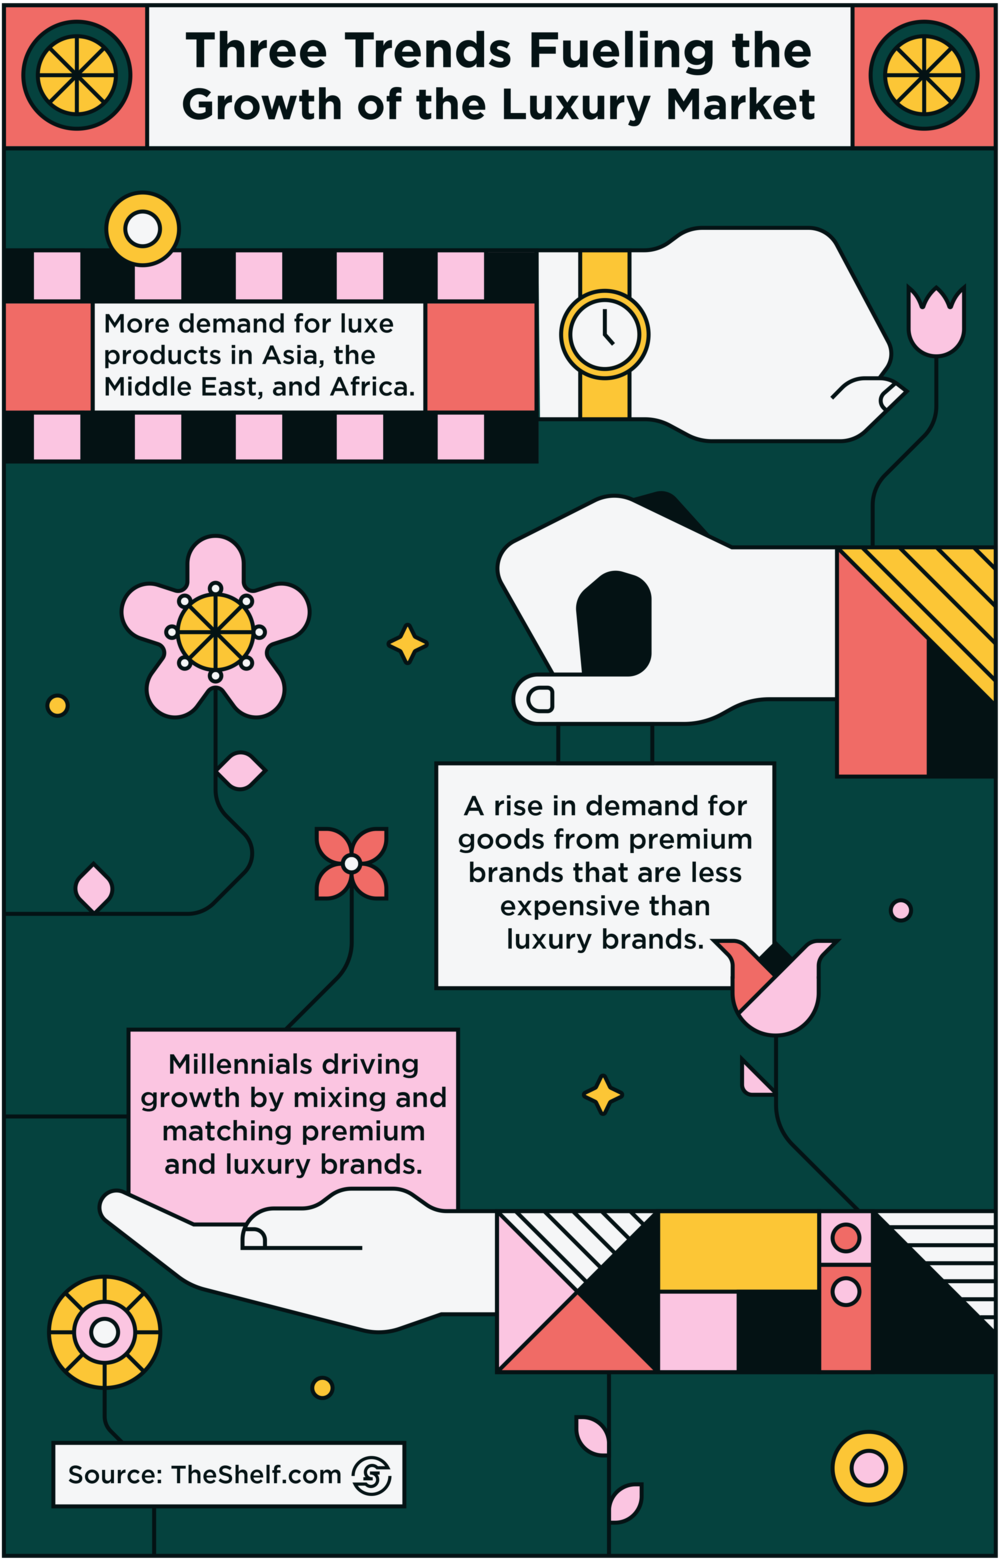 53 - Apr 1 - Luxury Brands Are Using Digital to Tap Into The Millennial Market_3.png